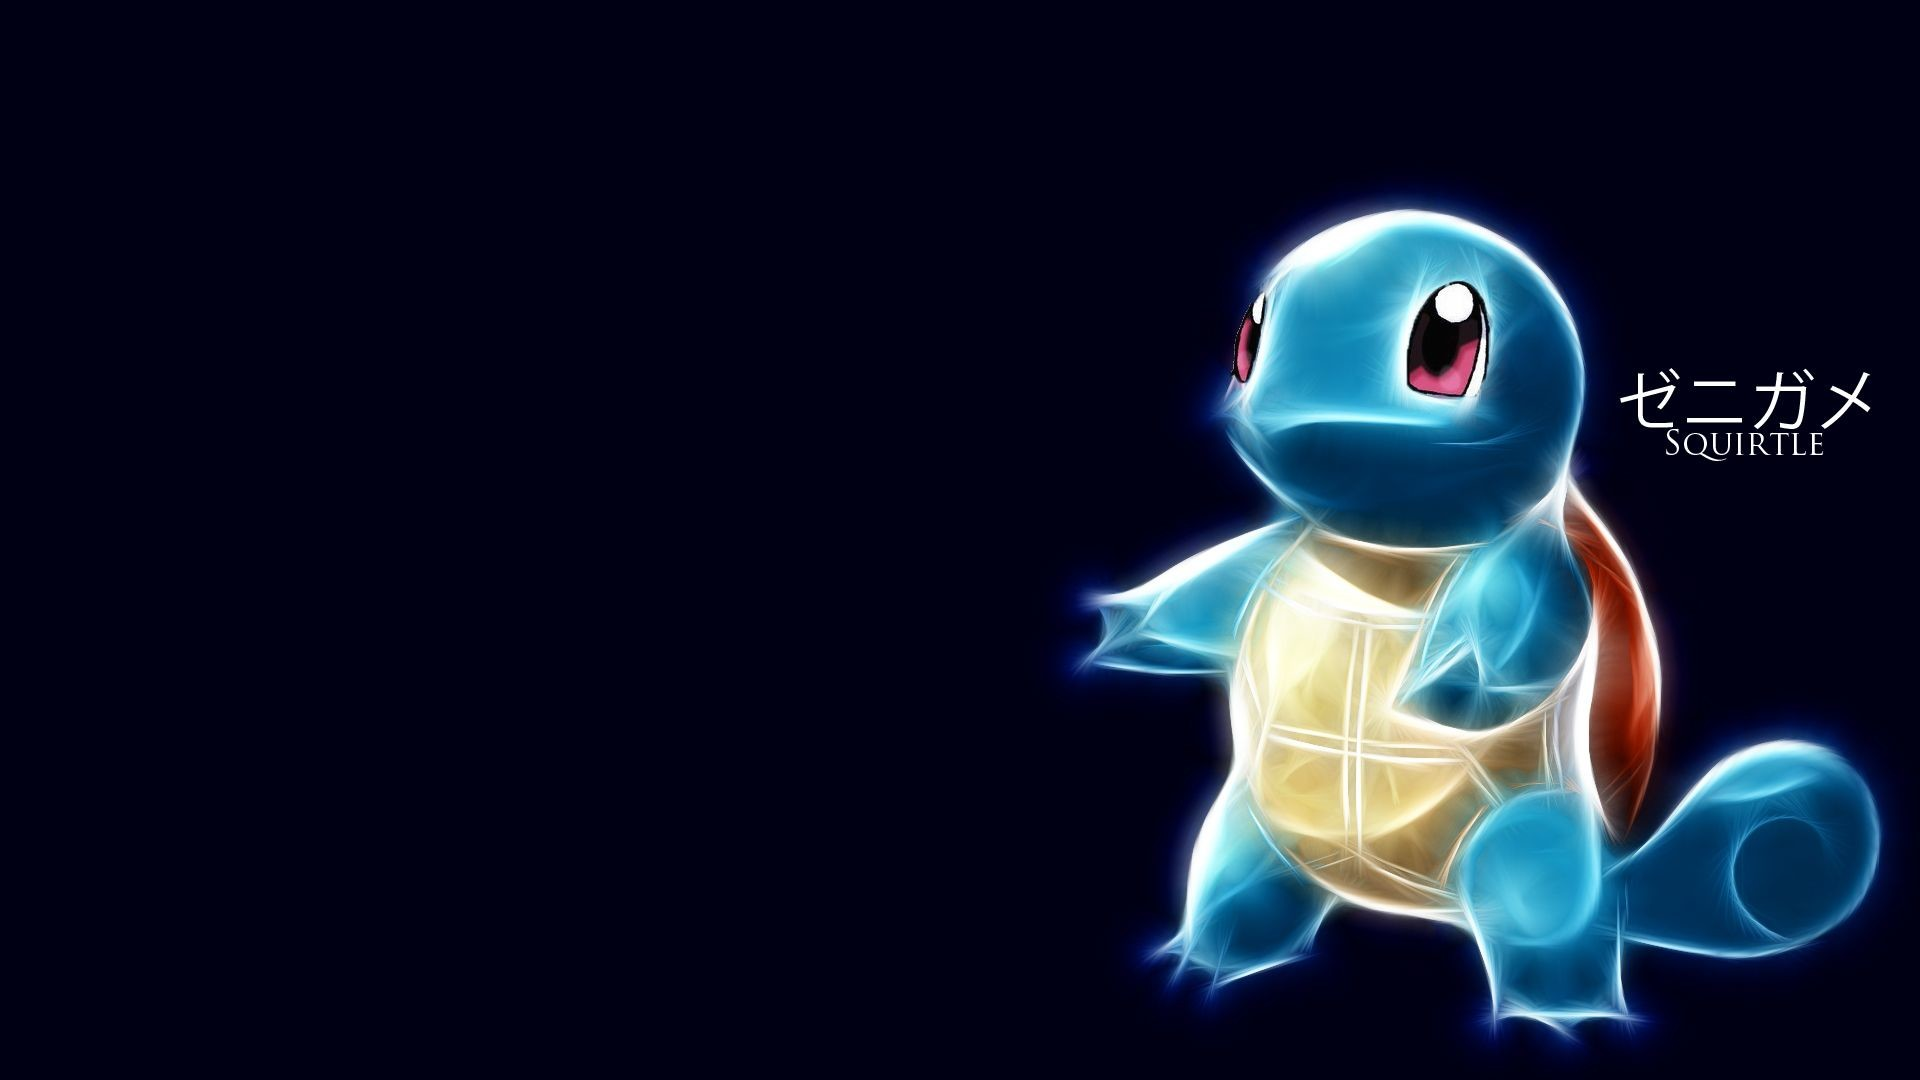 Res: 1920x1080, squirtle wallpaper HD u2013 wallpapermonkey.com | All Wallpapers .